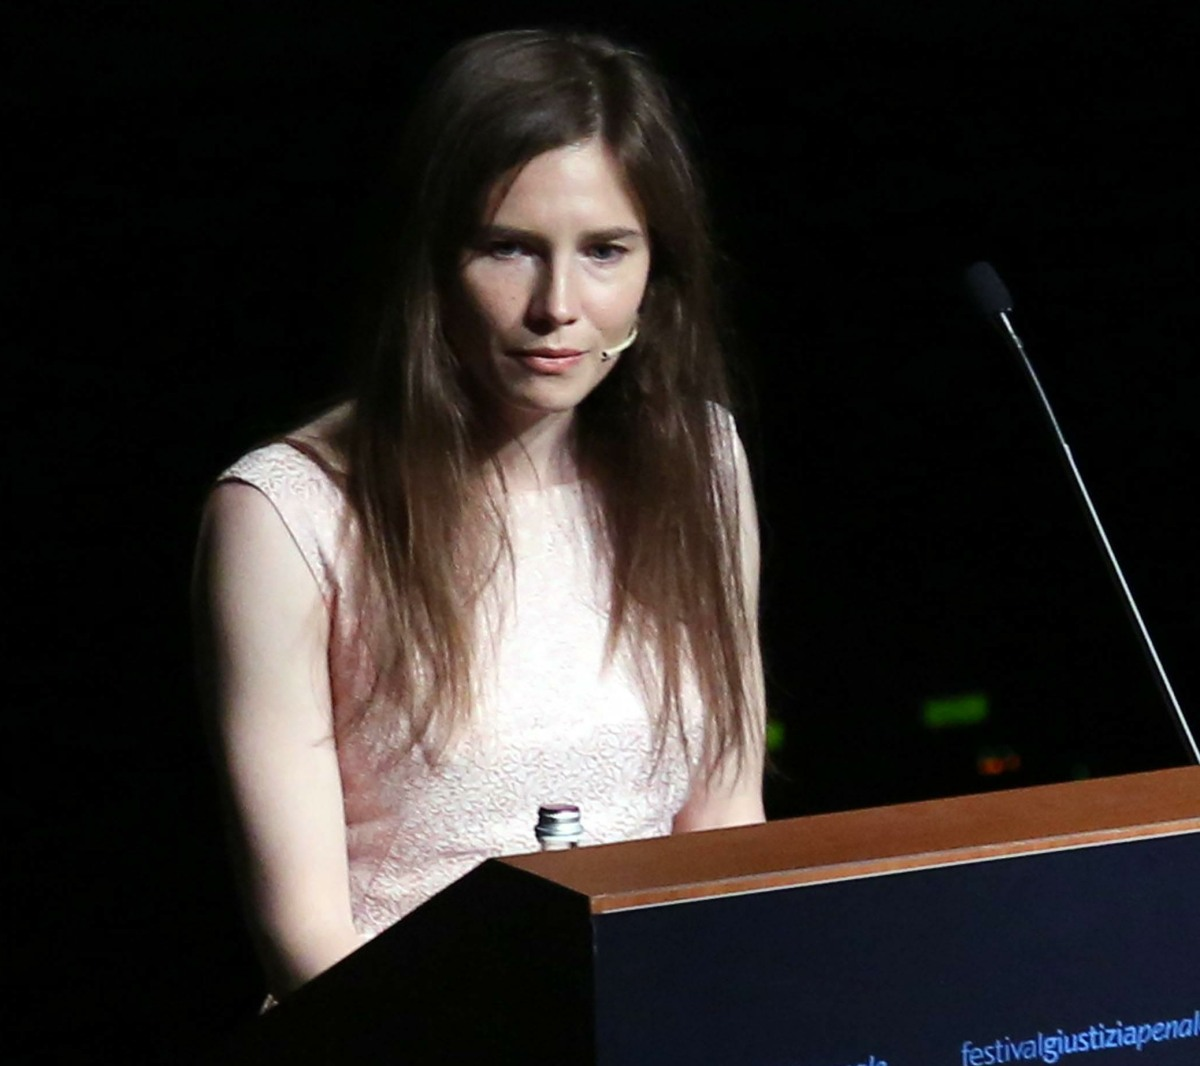 AMANDA KNOX DURING ITS INTERVENTION AT THE FESTIVAL OF CRIMINAL JUSTICE